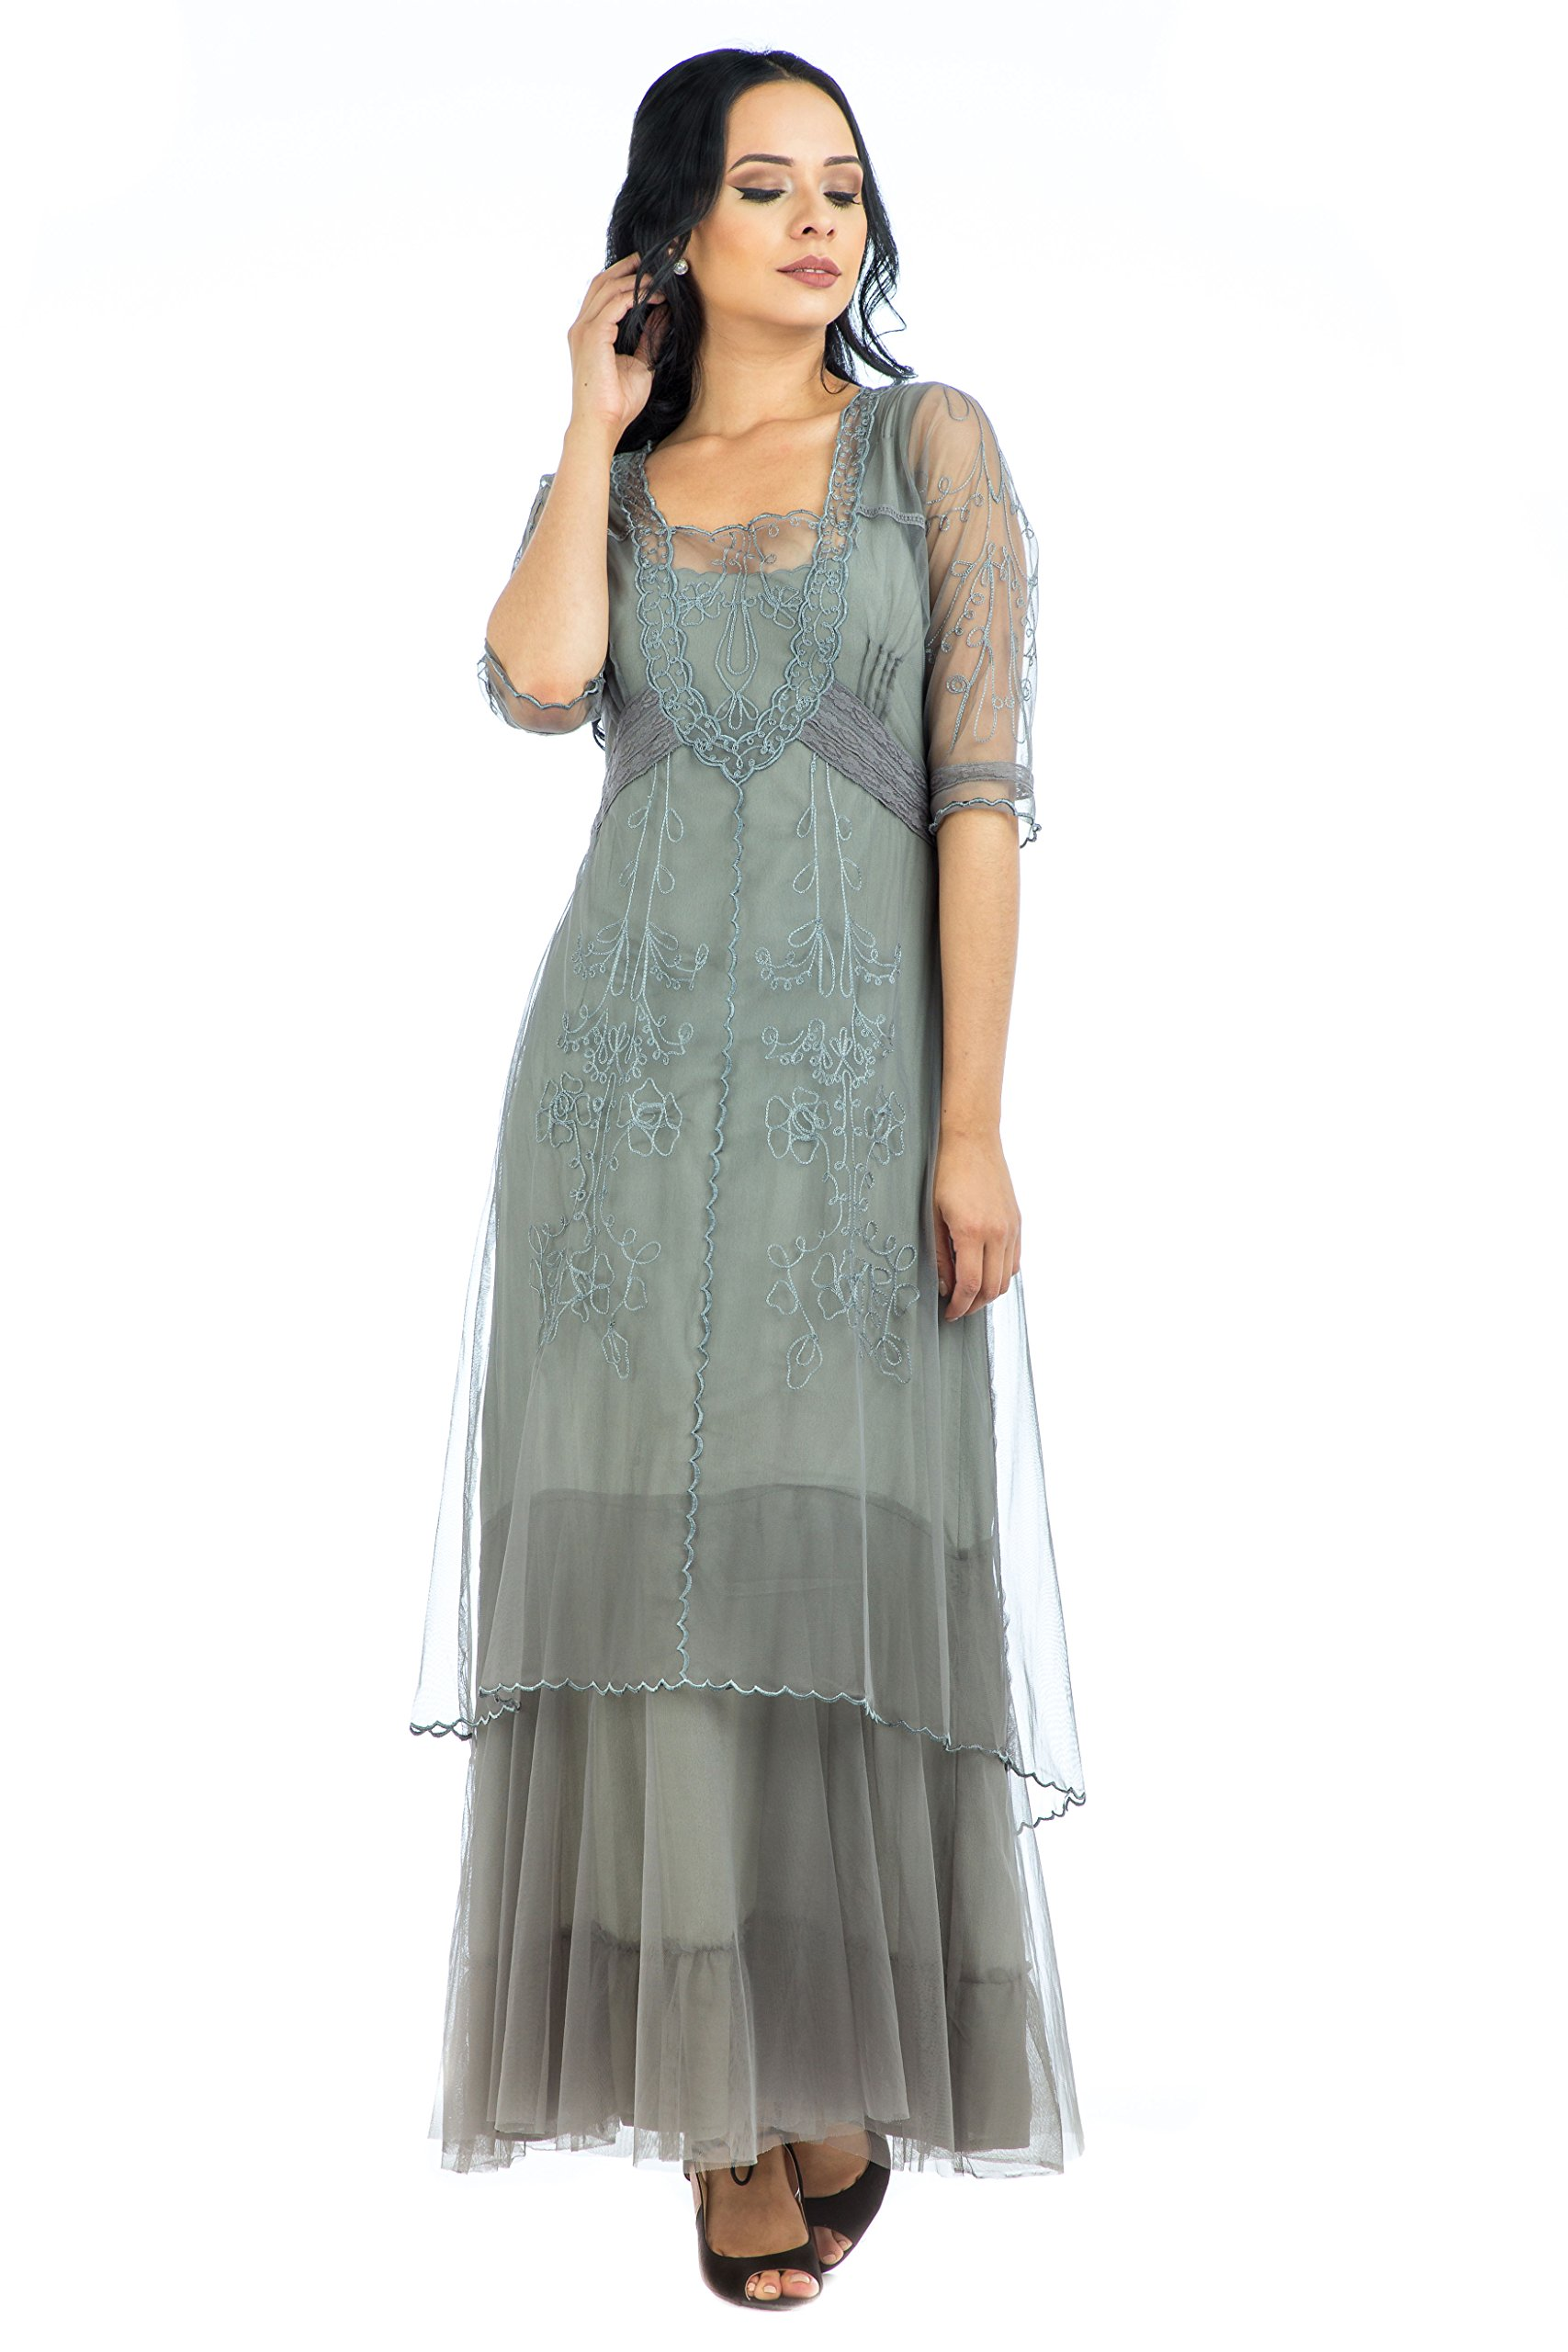 Nataya CL-201 Women's Victoria True Romance Vintage Style Party Dress in Smoke (S)